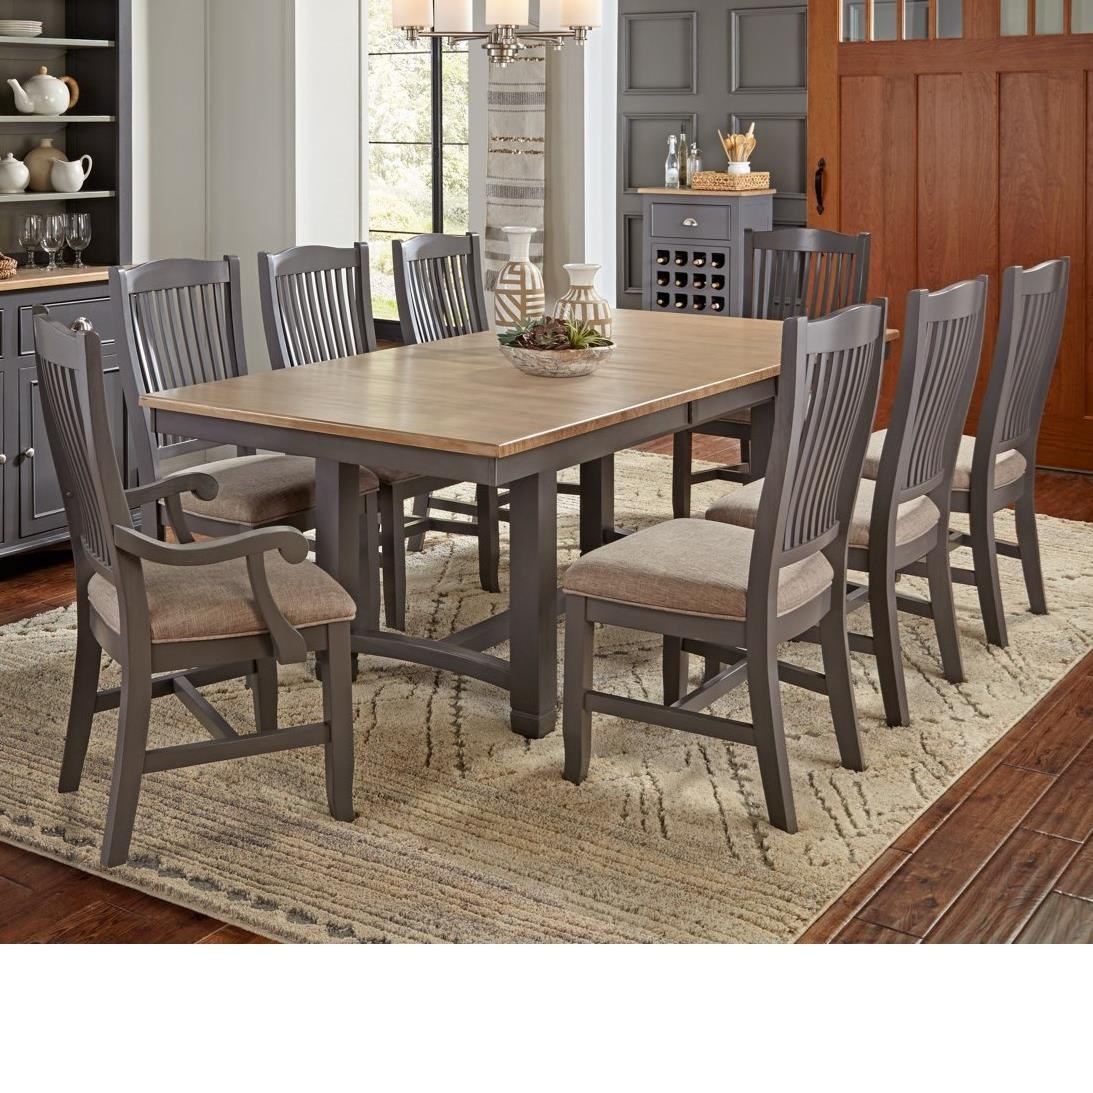 Port Townsend 9 Pc Table Set by A-A at Walker's Furniture